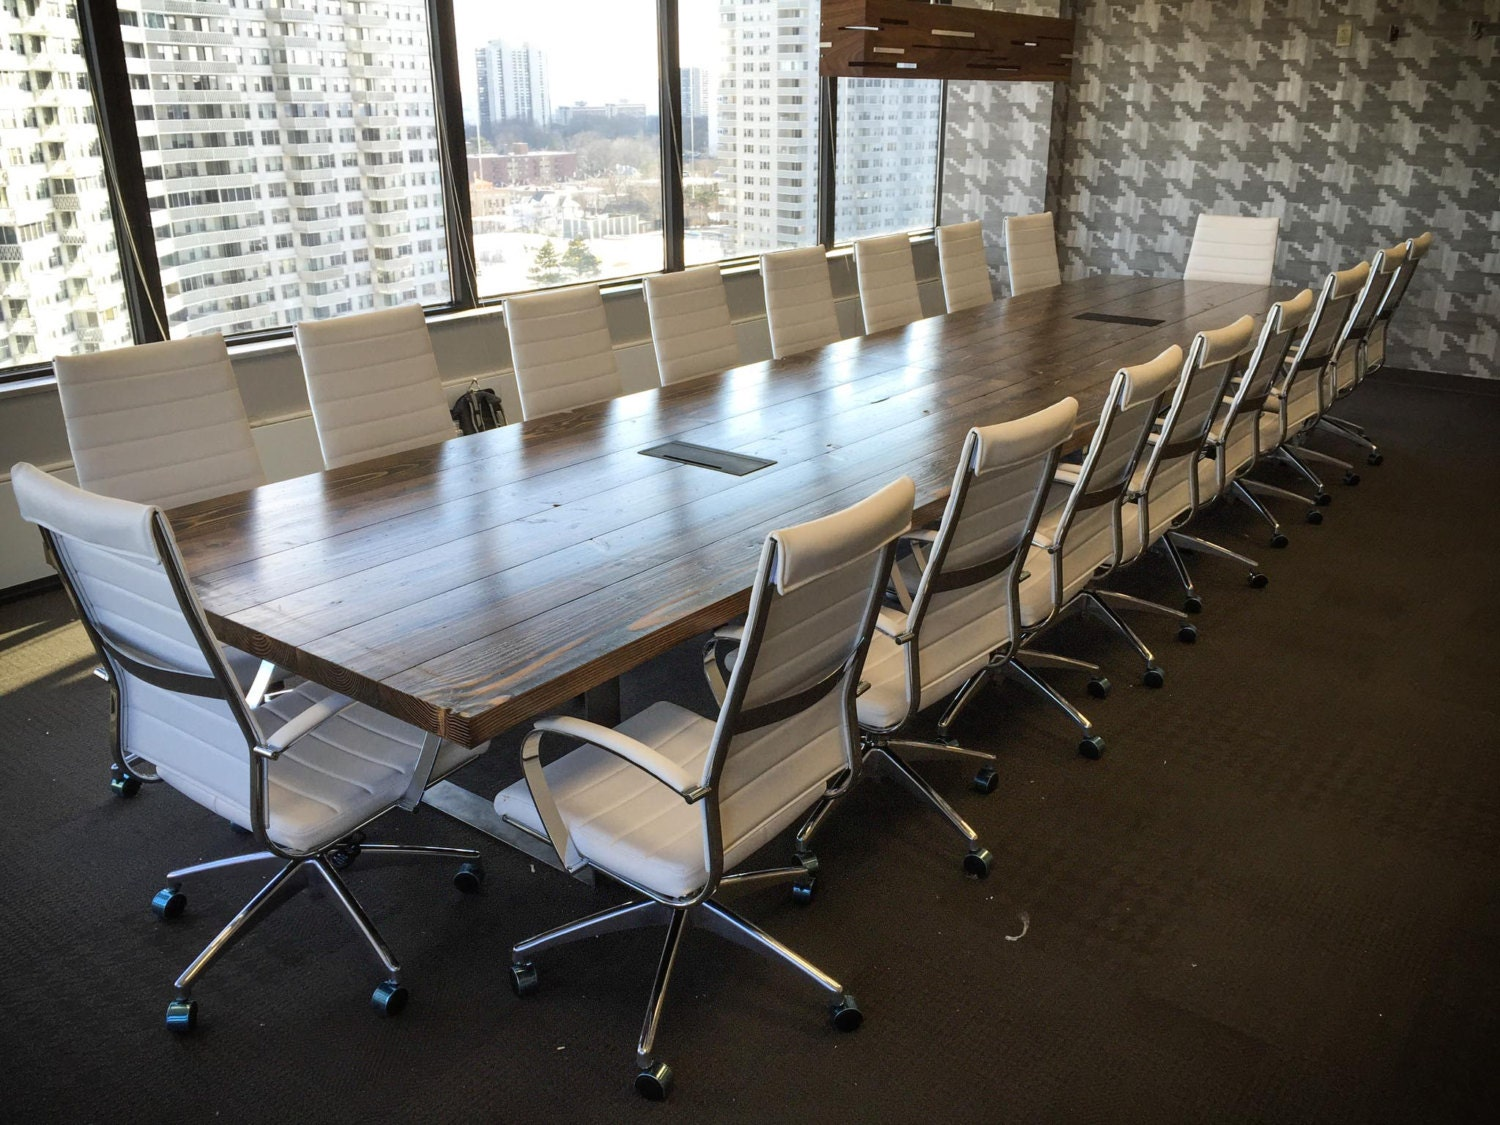 10ft Turkish Steel Conference Table | Rustic Boardroom Table With Steel  Legs | Solid Wood |